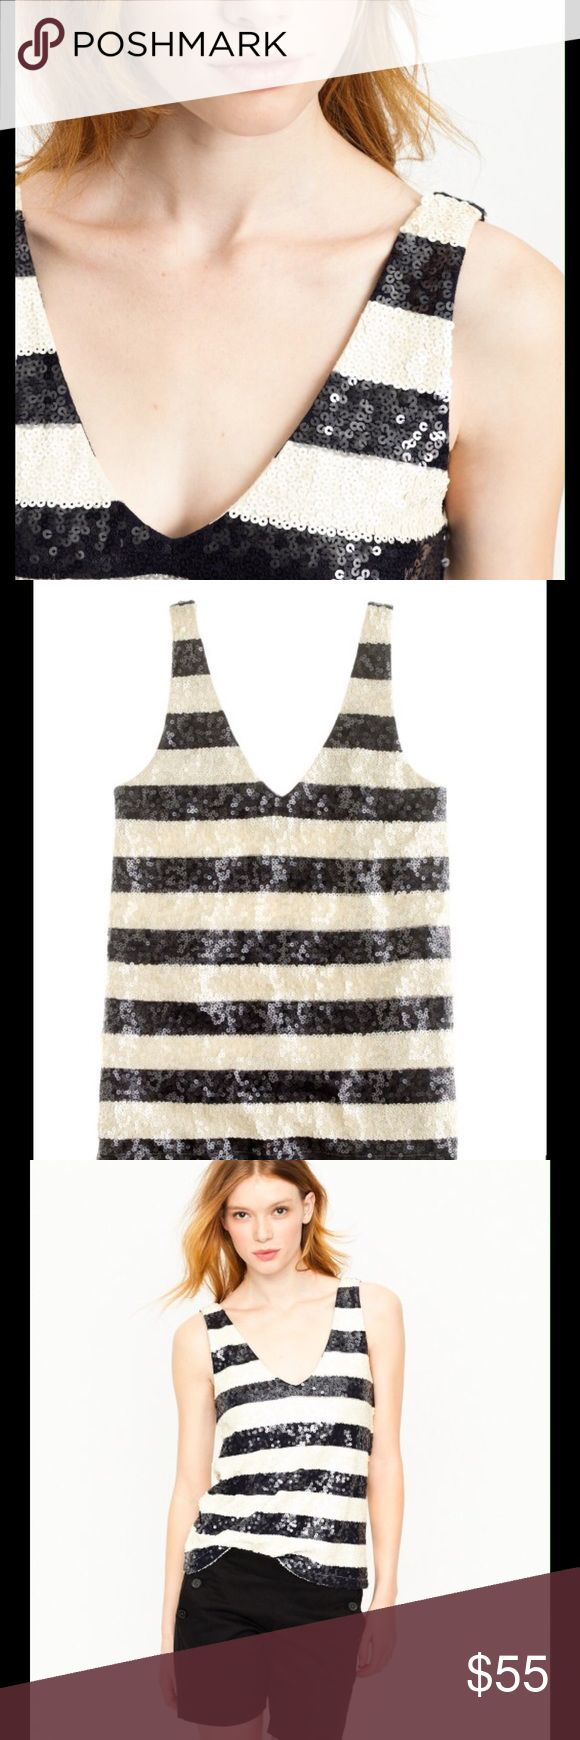 JCREW SEQUIN TOP NWOT This beautiful vneck sequin cami in navy and ivory stripe. What a great way to dress up those nautical looks this summer.  Never worn. Reasonable offers considered and closet discount on bundles. J. Crew Tops Camisoles